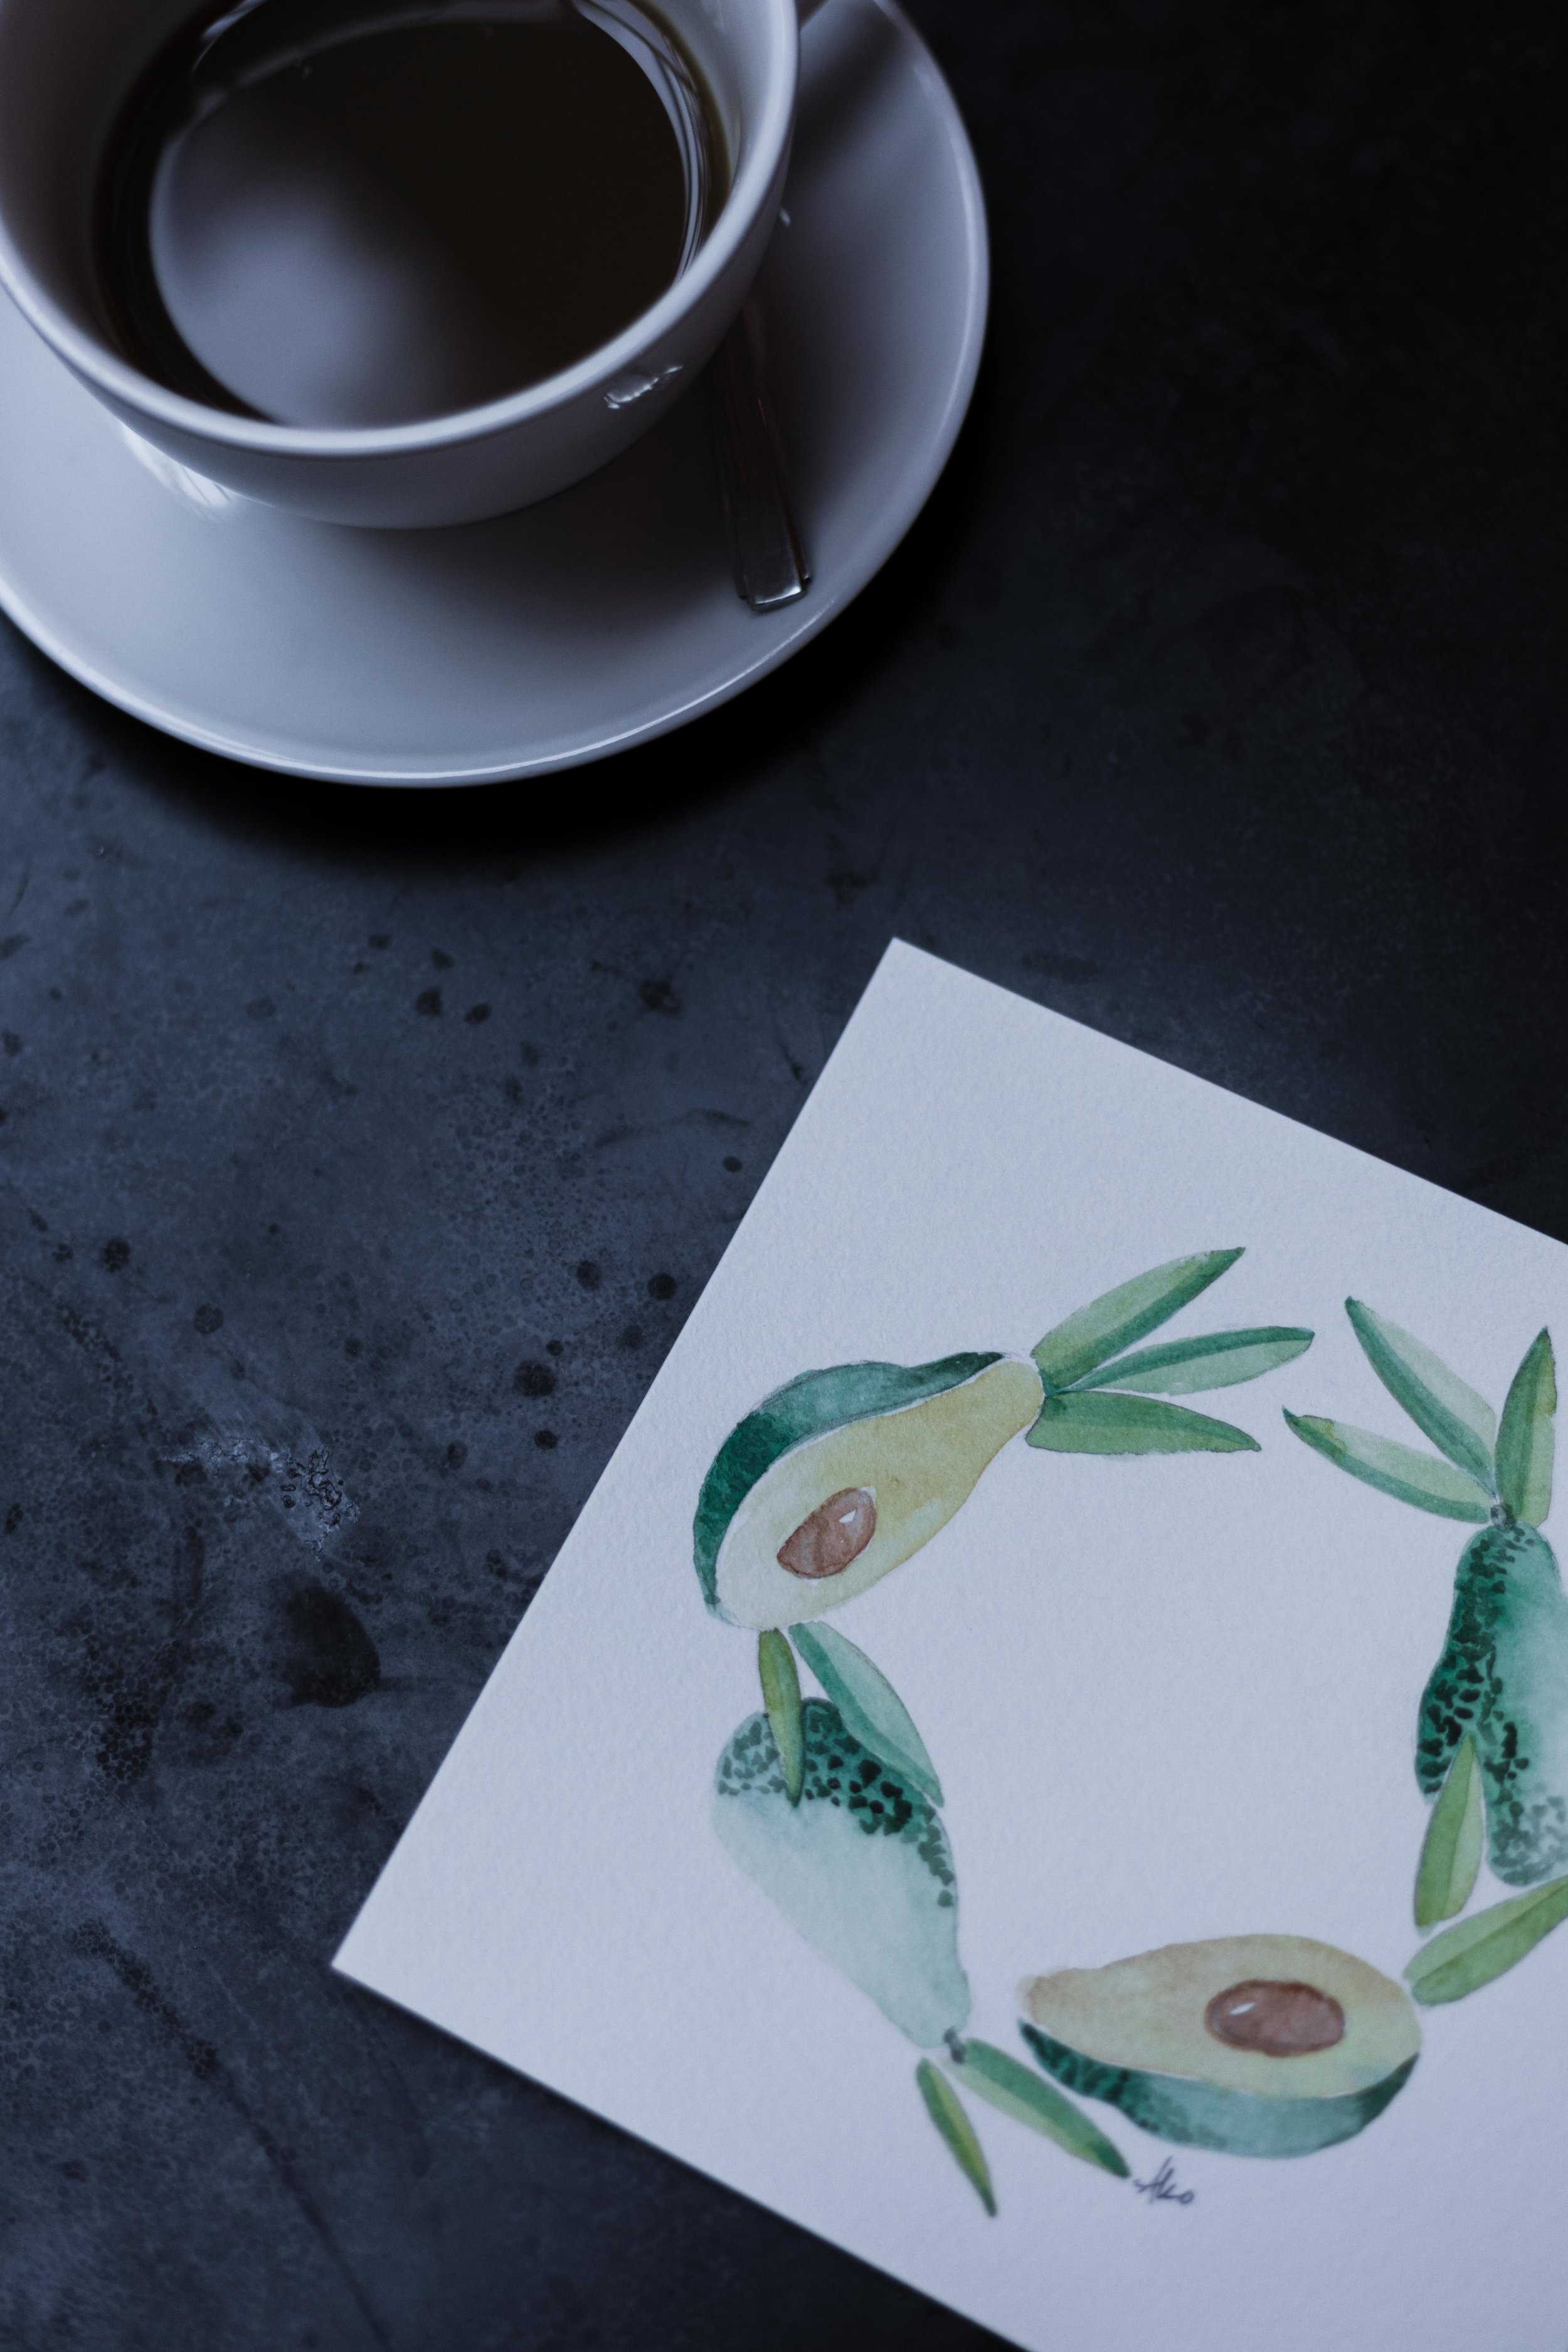 Avocado drawing by Things Unseen Designs in Chicago